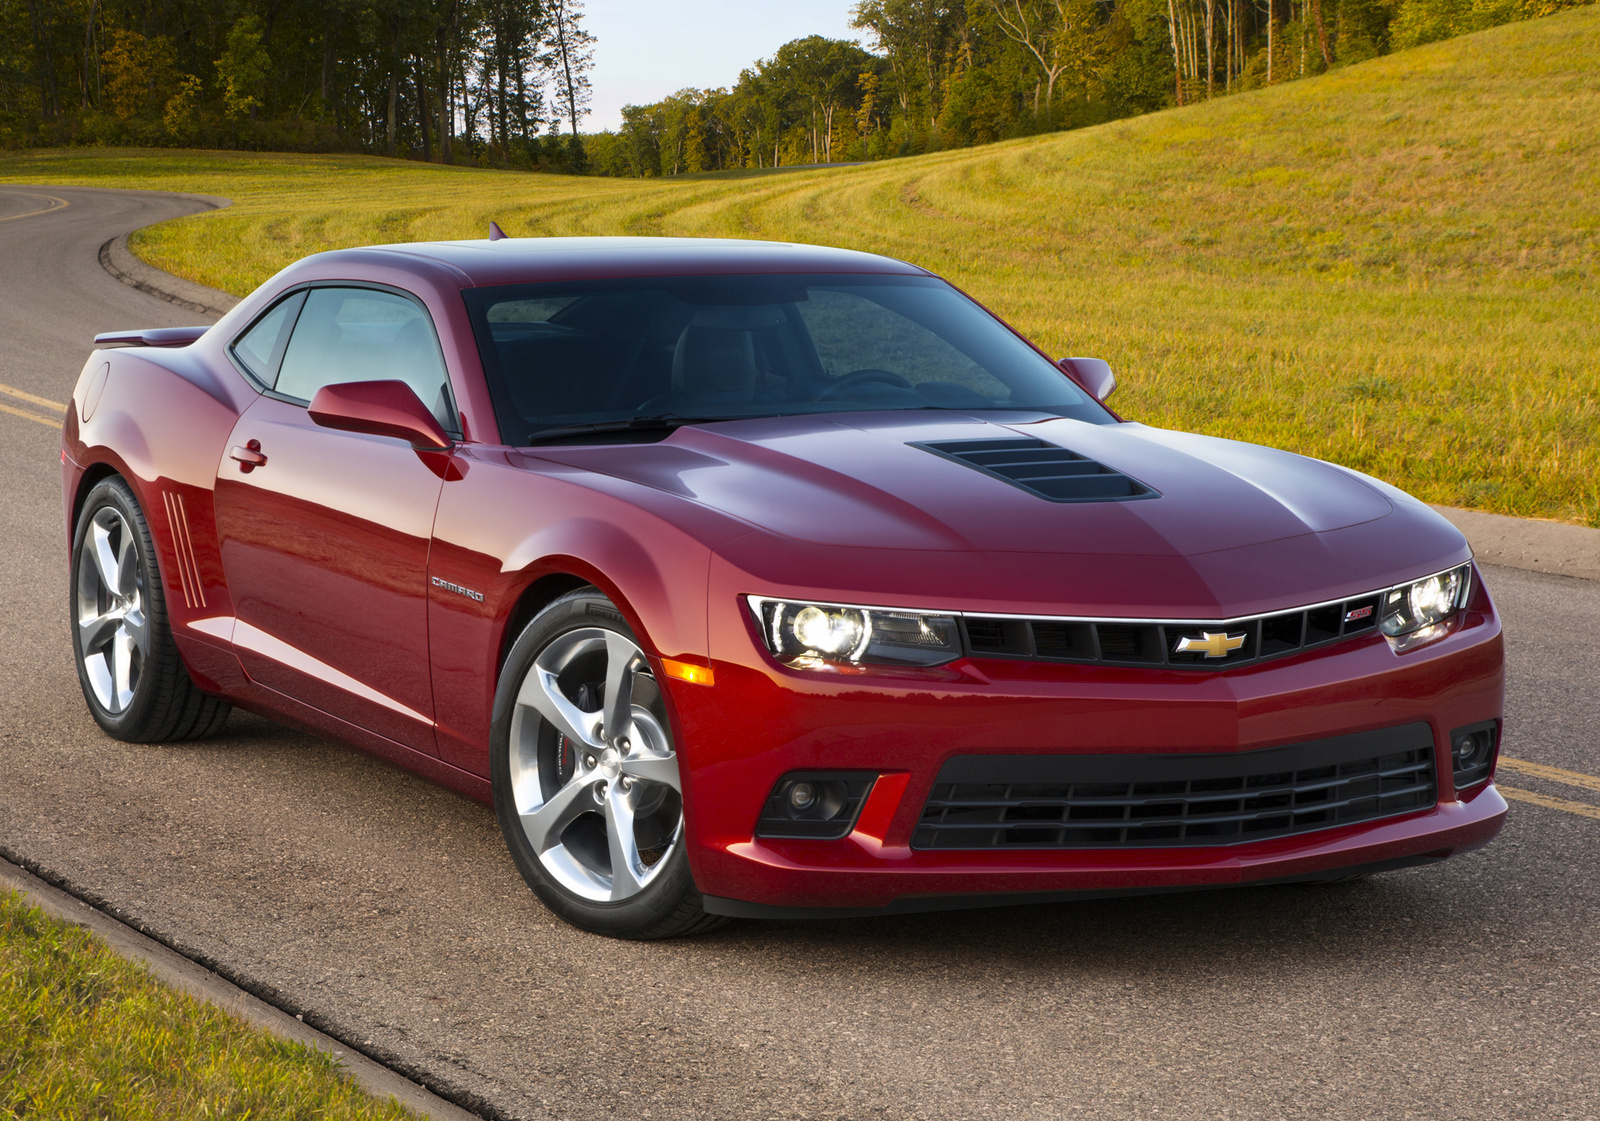 drive h camaro news first chevrolet too review be fun fast to